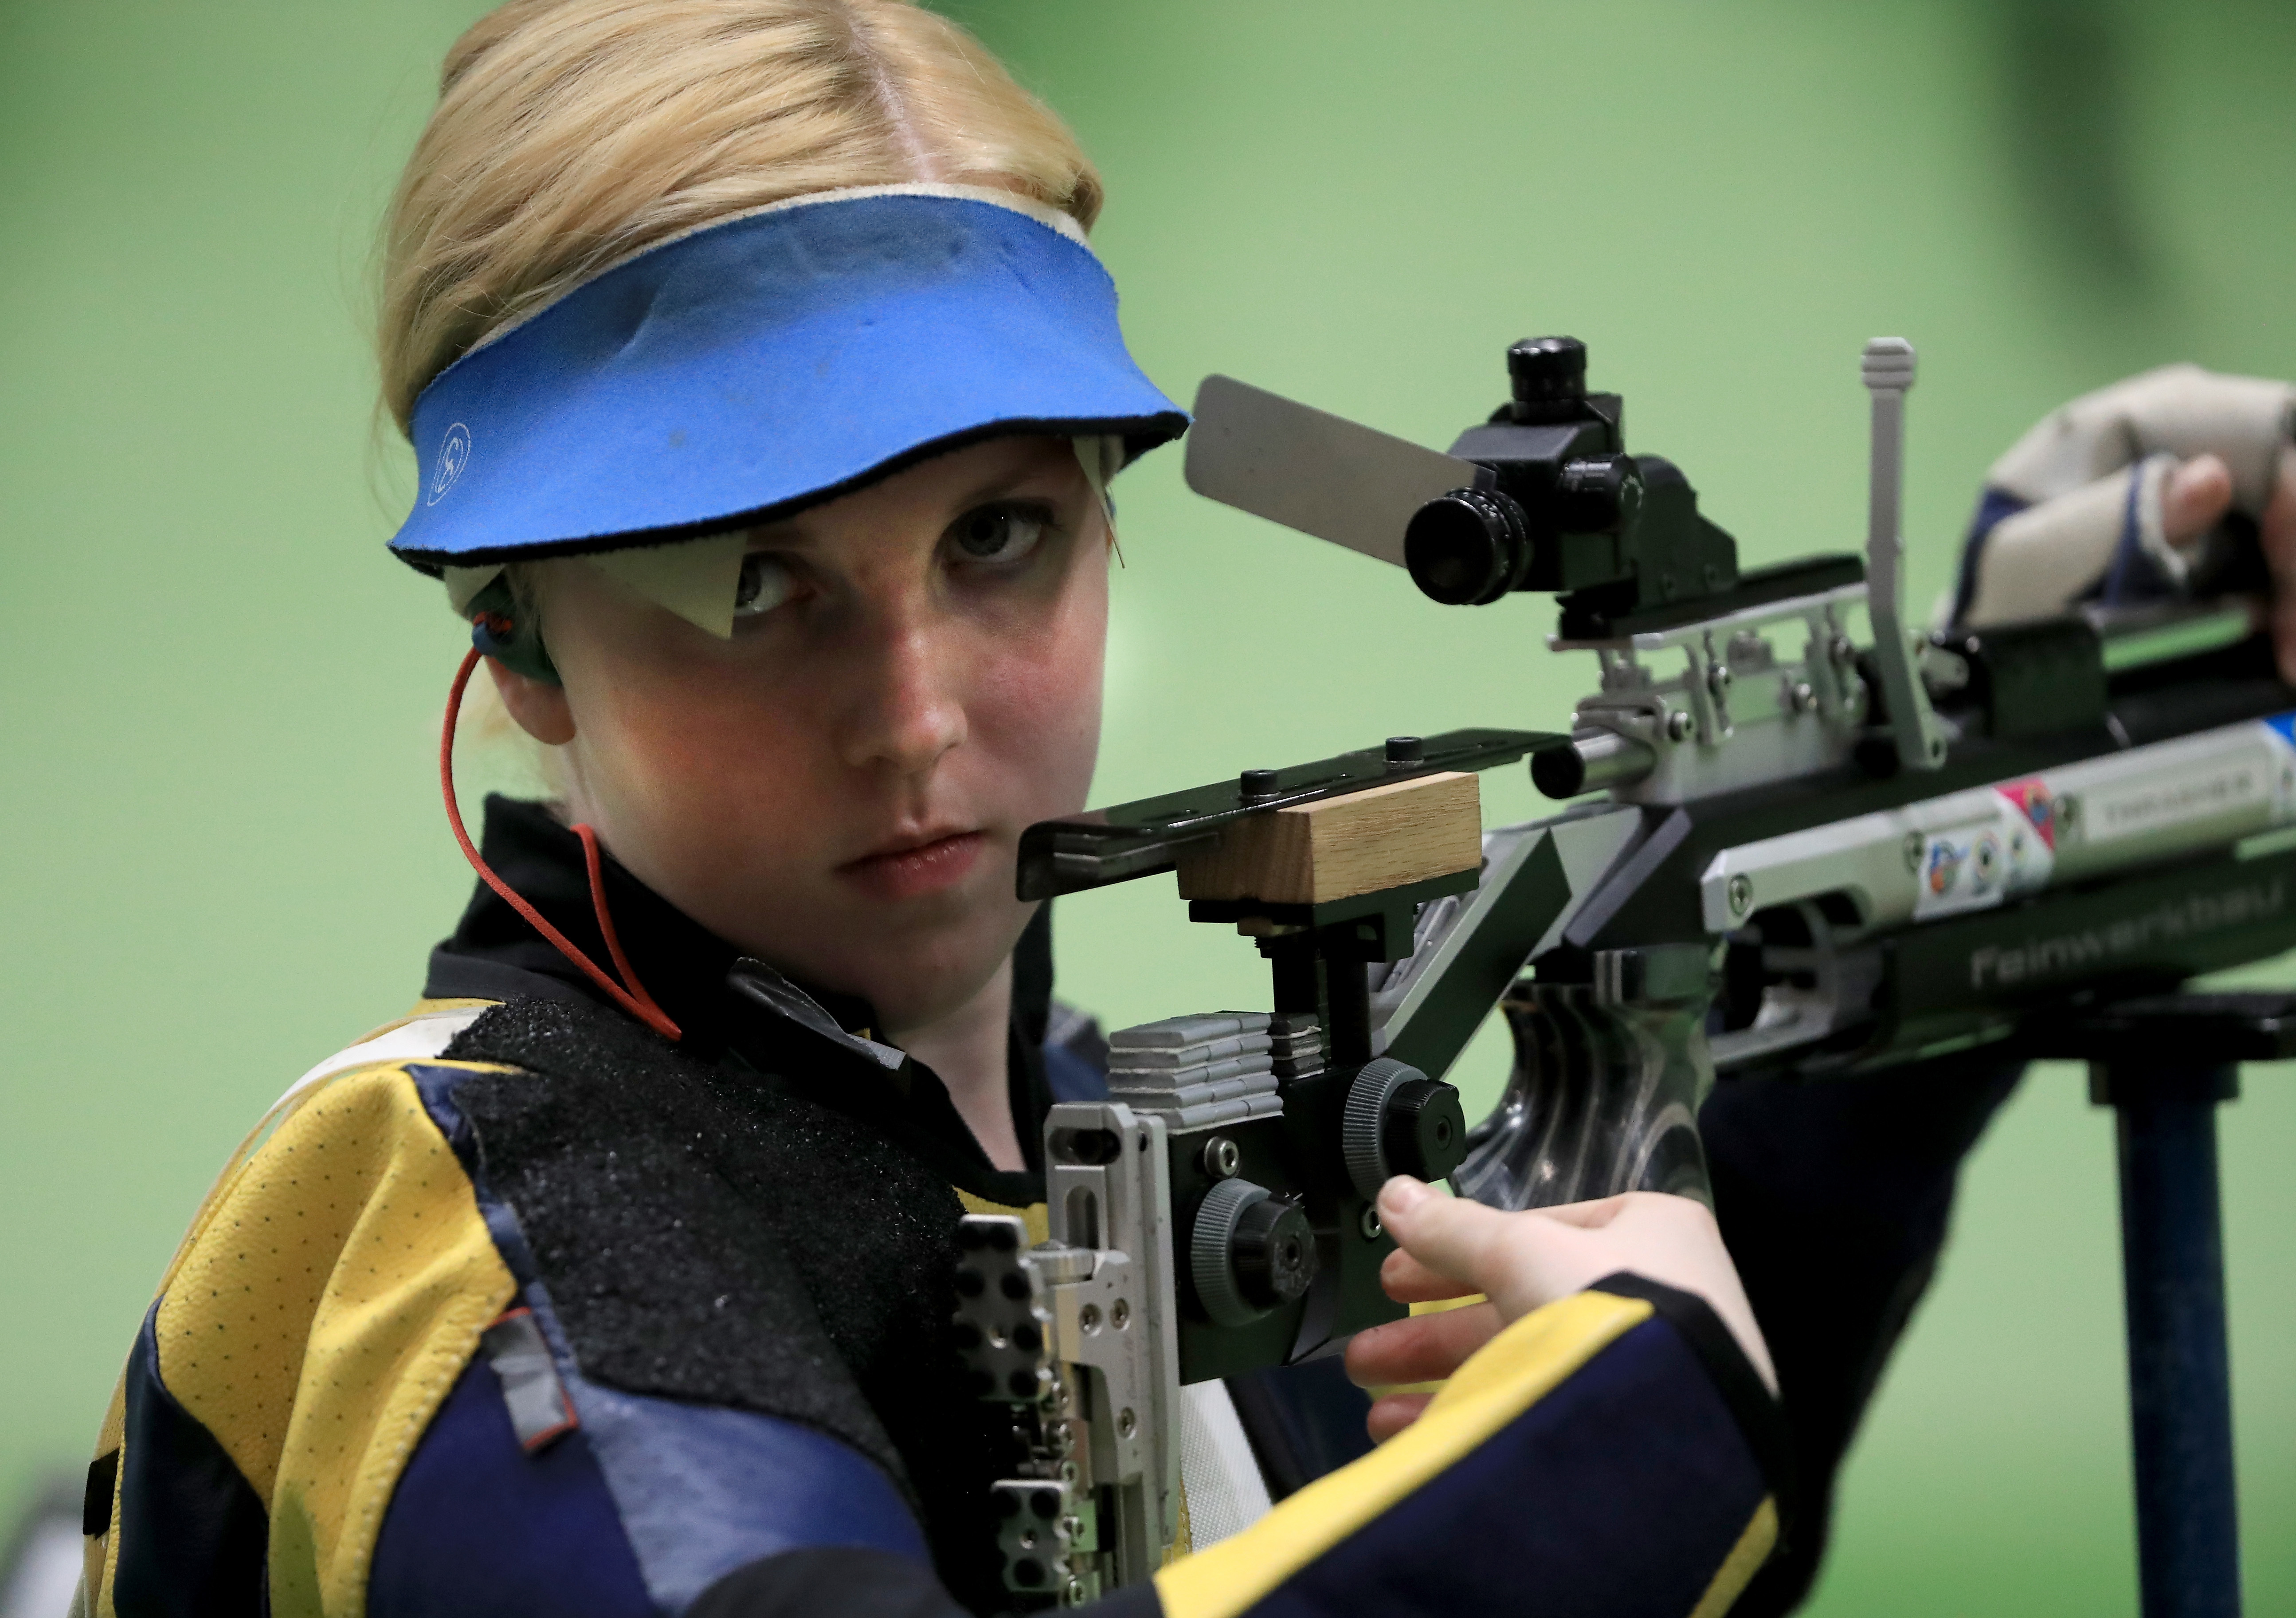 Team USA sharpshooter and Olympic first-timer Virginia Thrasher won a gold medal in the 10m Women's Air Rifle competition.